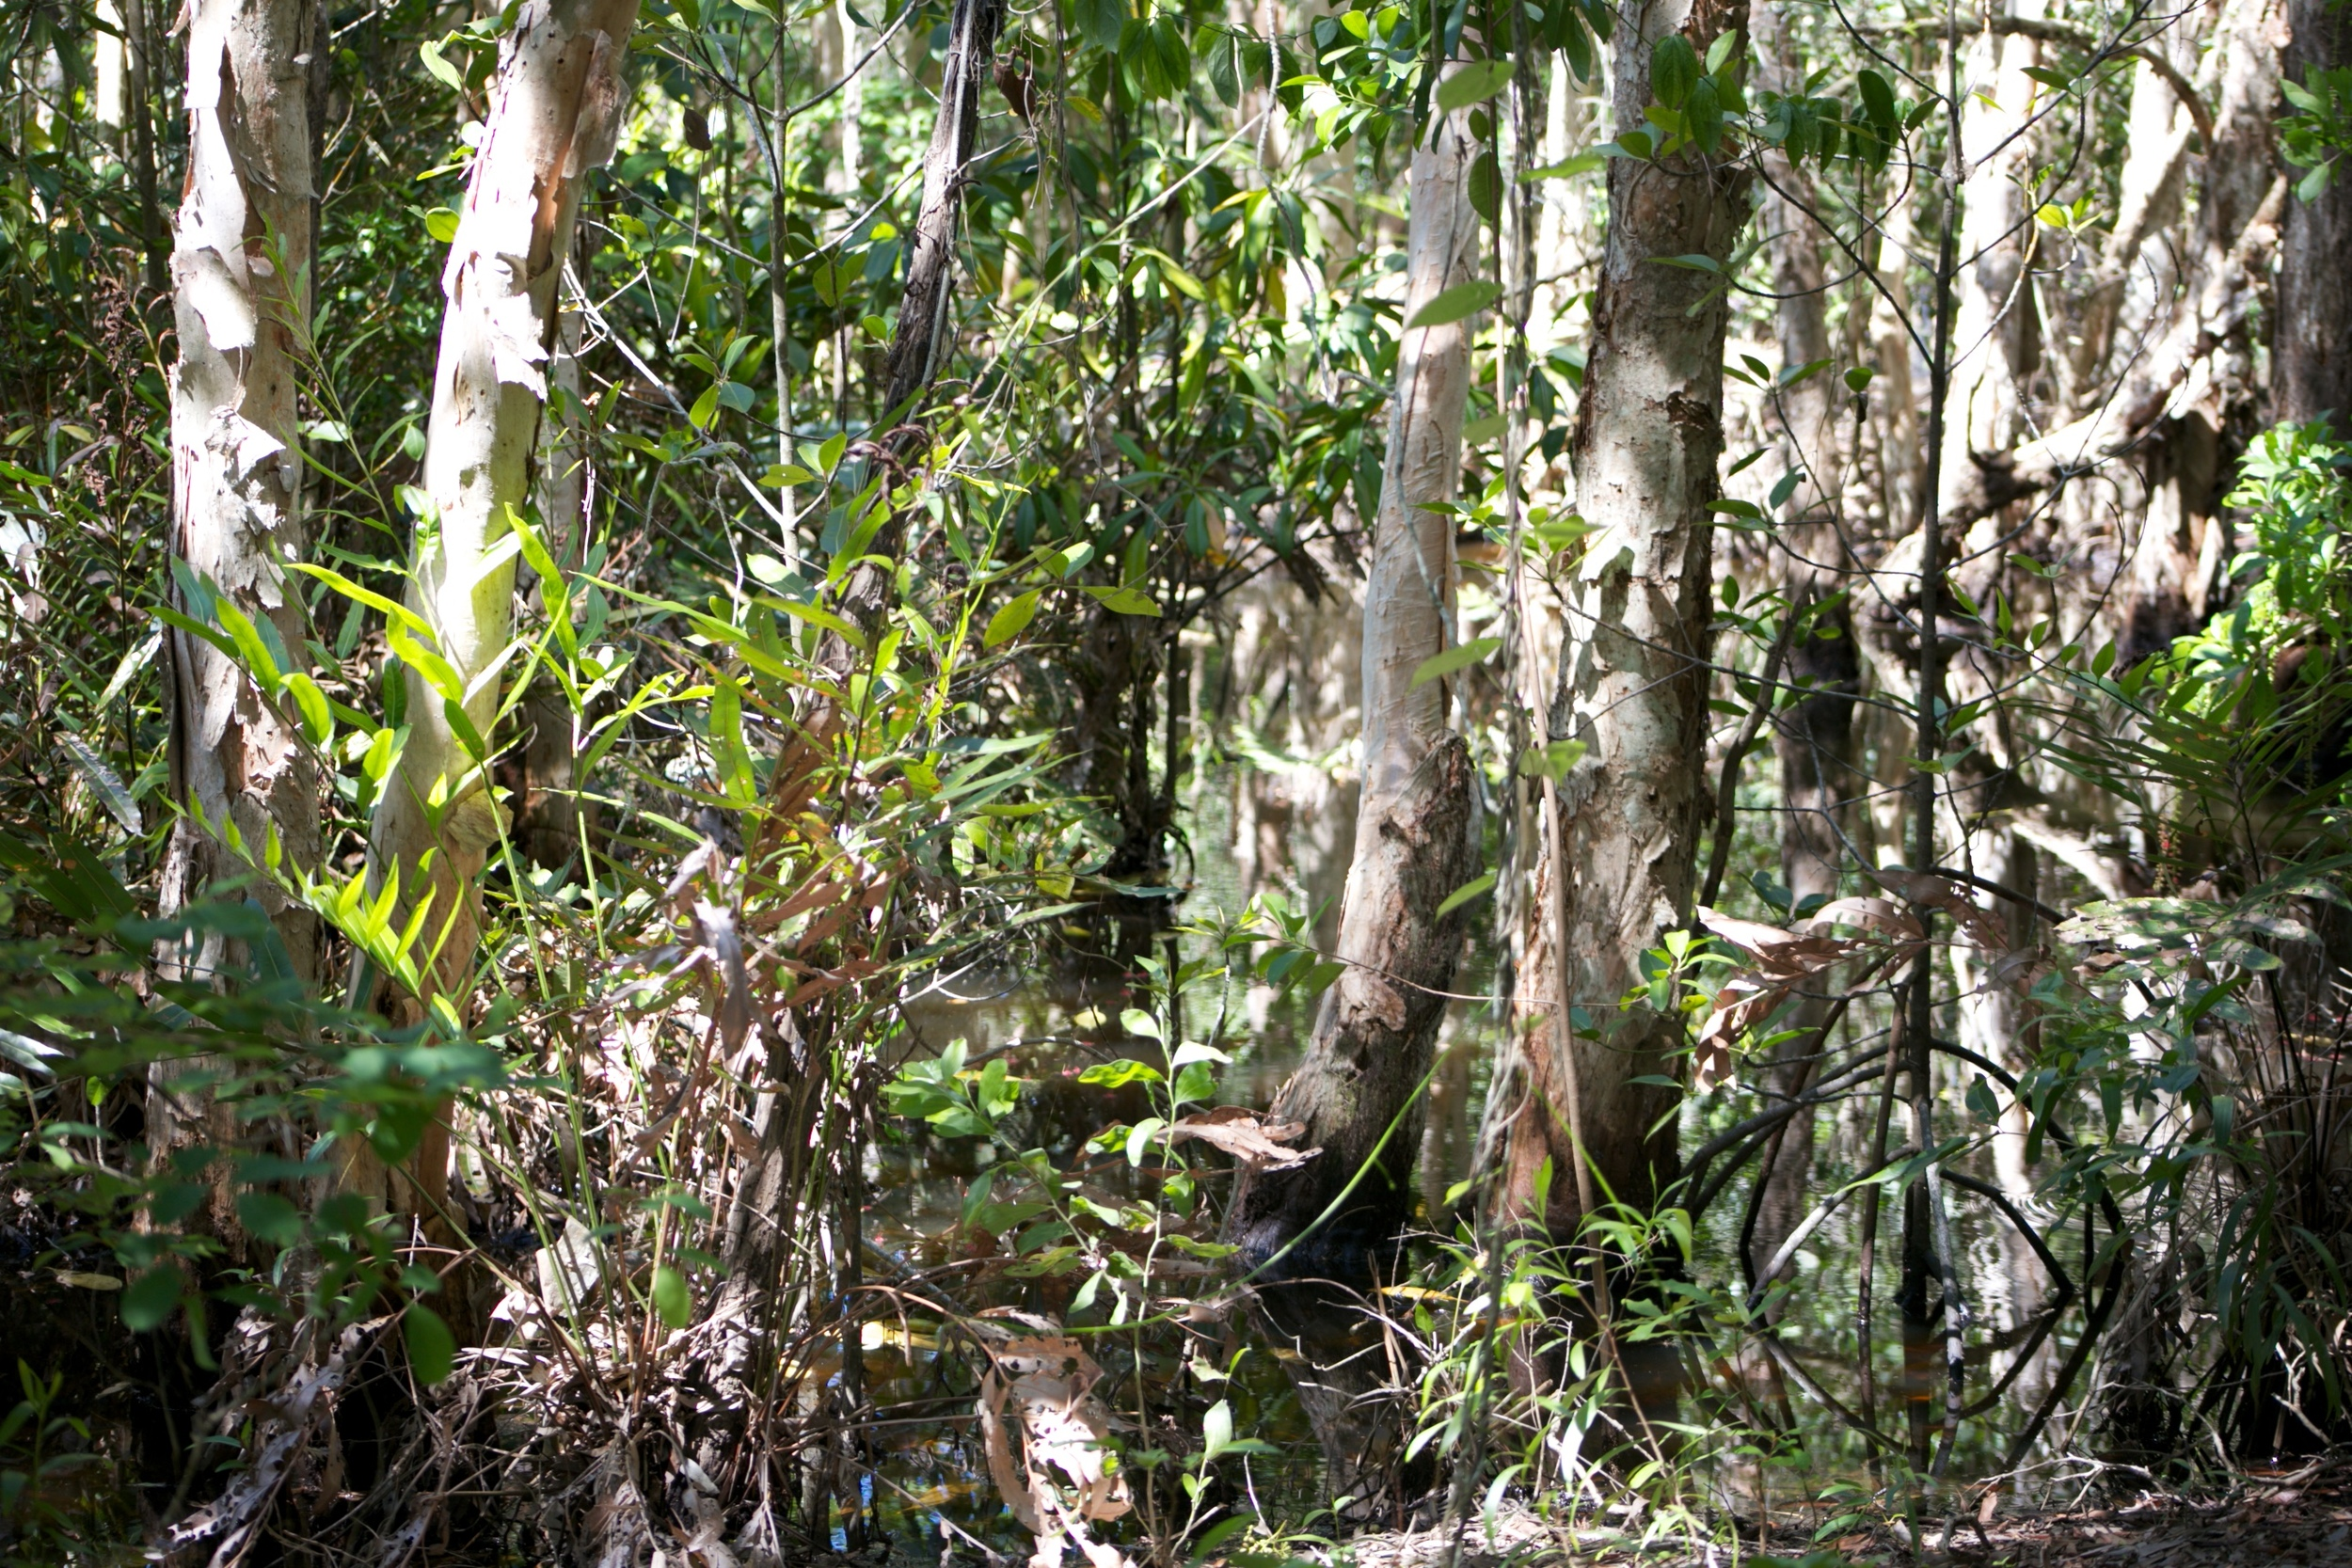 Australian jungle trees and marshes.